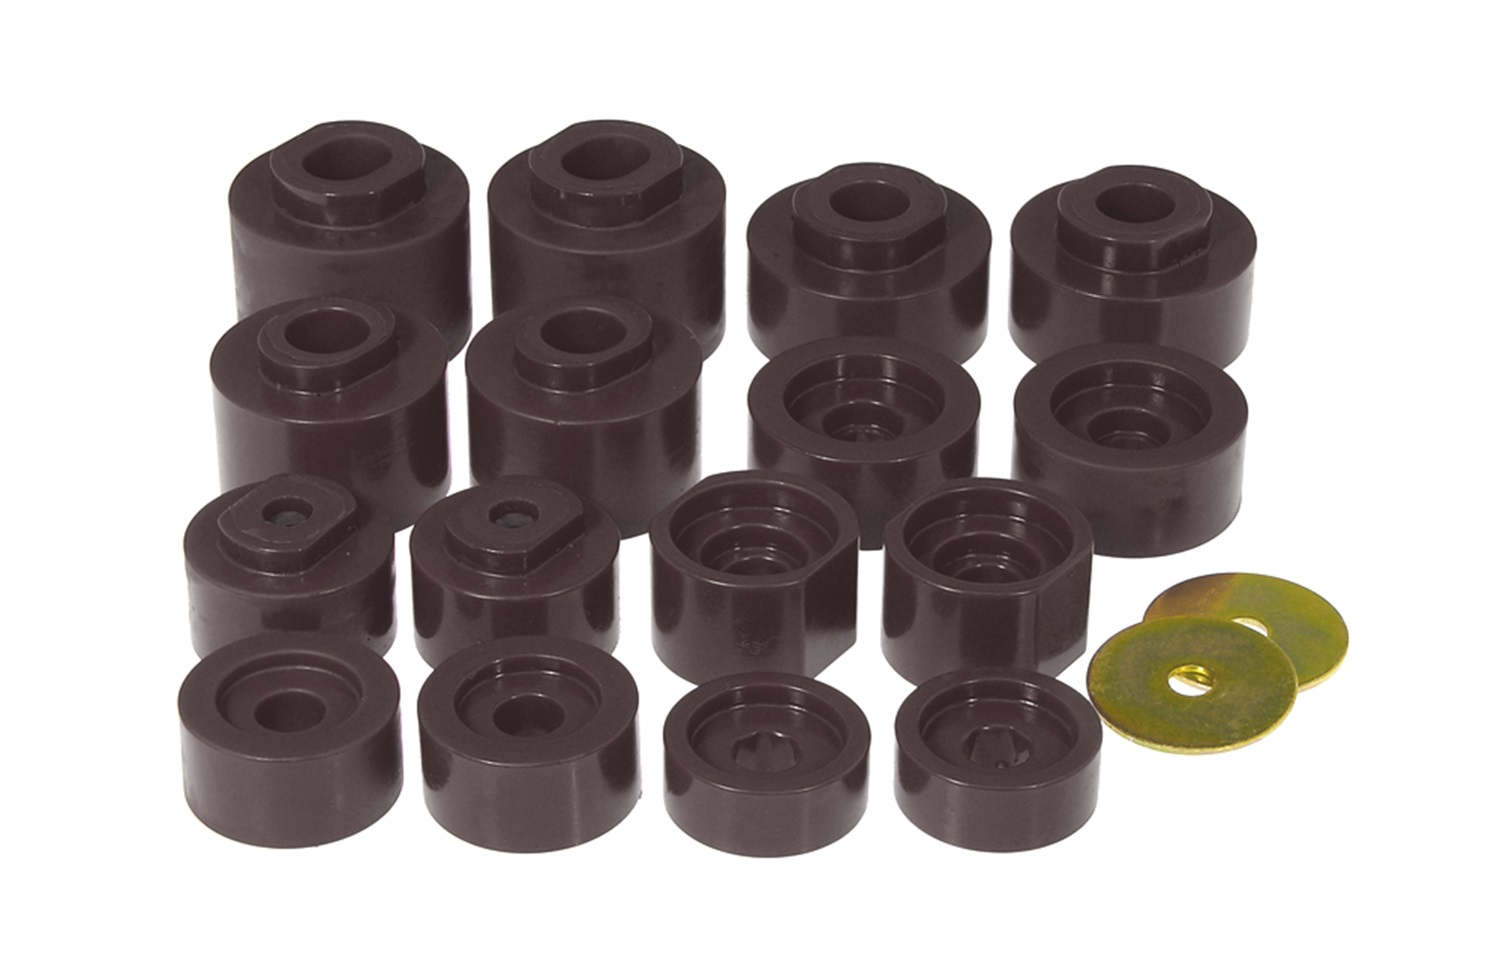 Prothane 6-116-BL Body Mount Kit Fits 01-05 Explorer Sport Trac